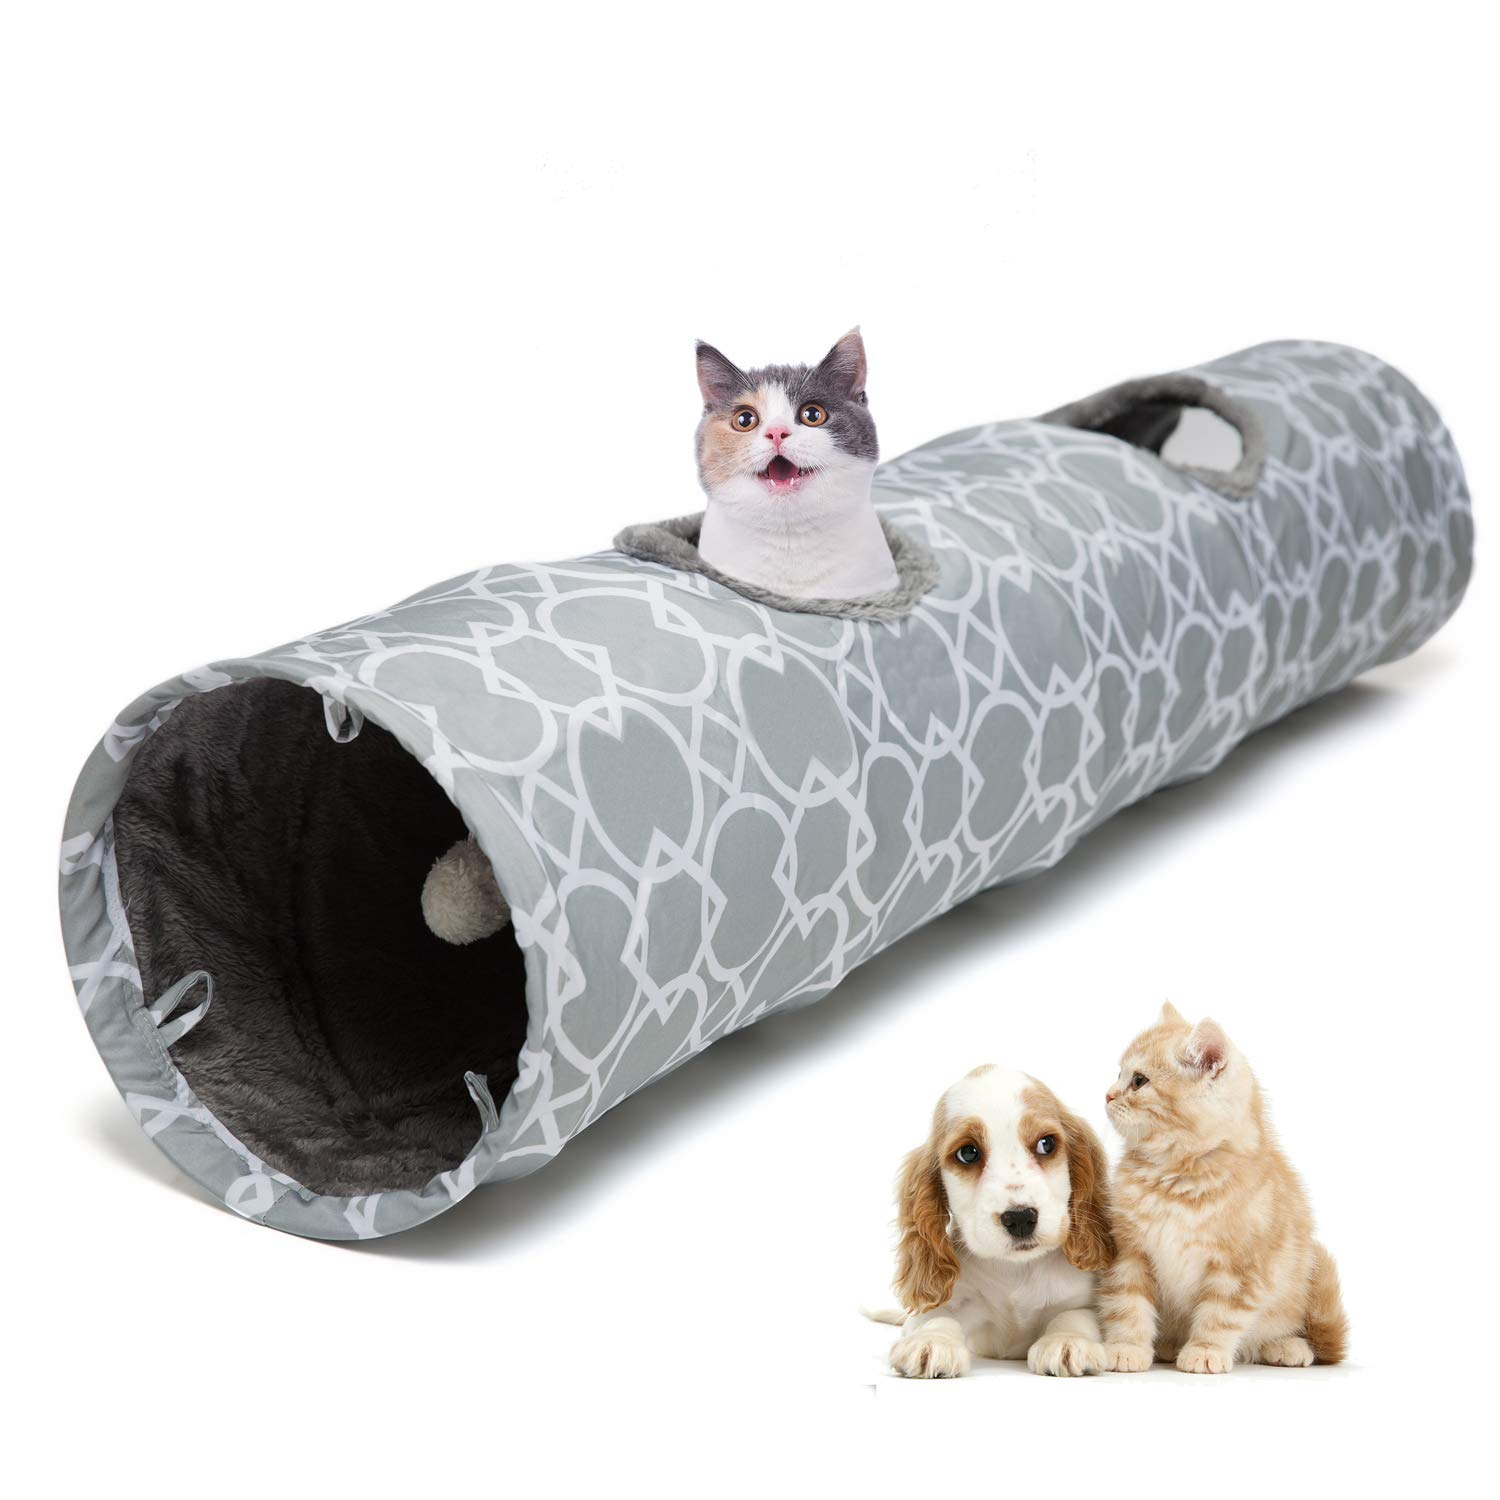 Luckitty Large Cat Toys Collapsible Tunnel Tube with Plush Balls, for Rabbits, Kittens, Ferrets,Puppy and Dogs,Grey,White by Luckitty